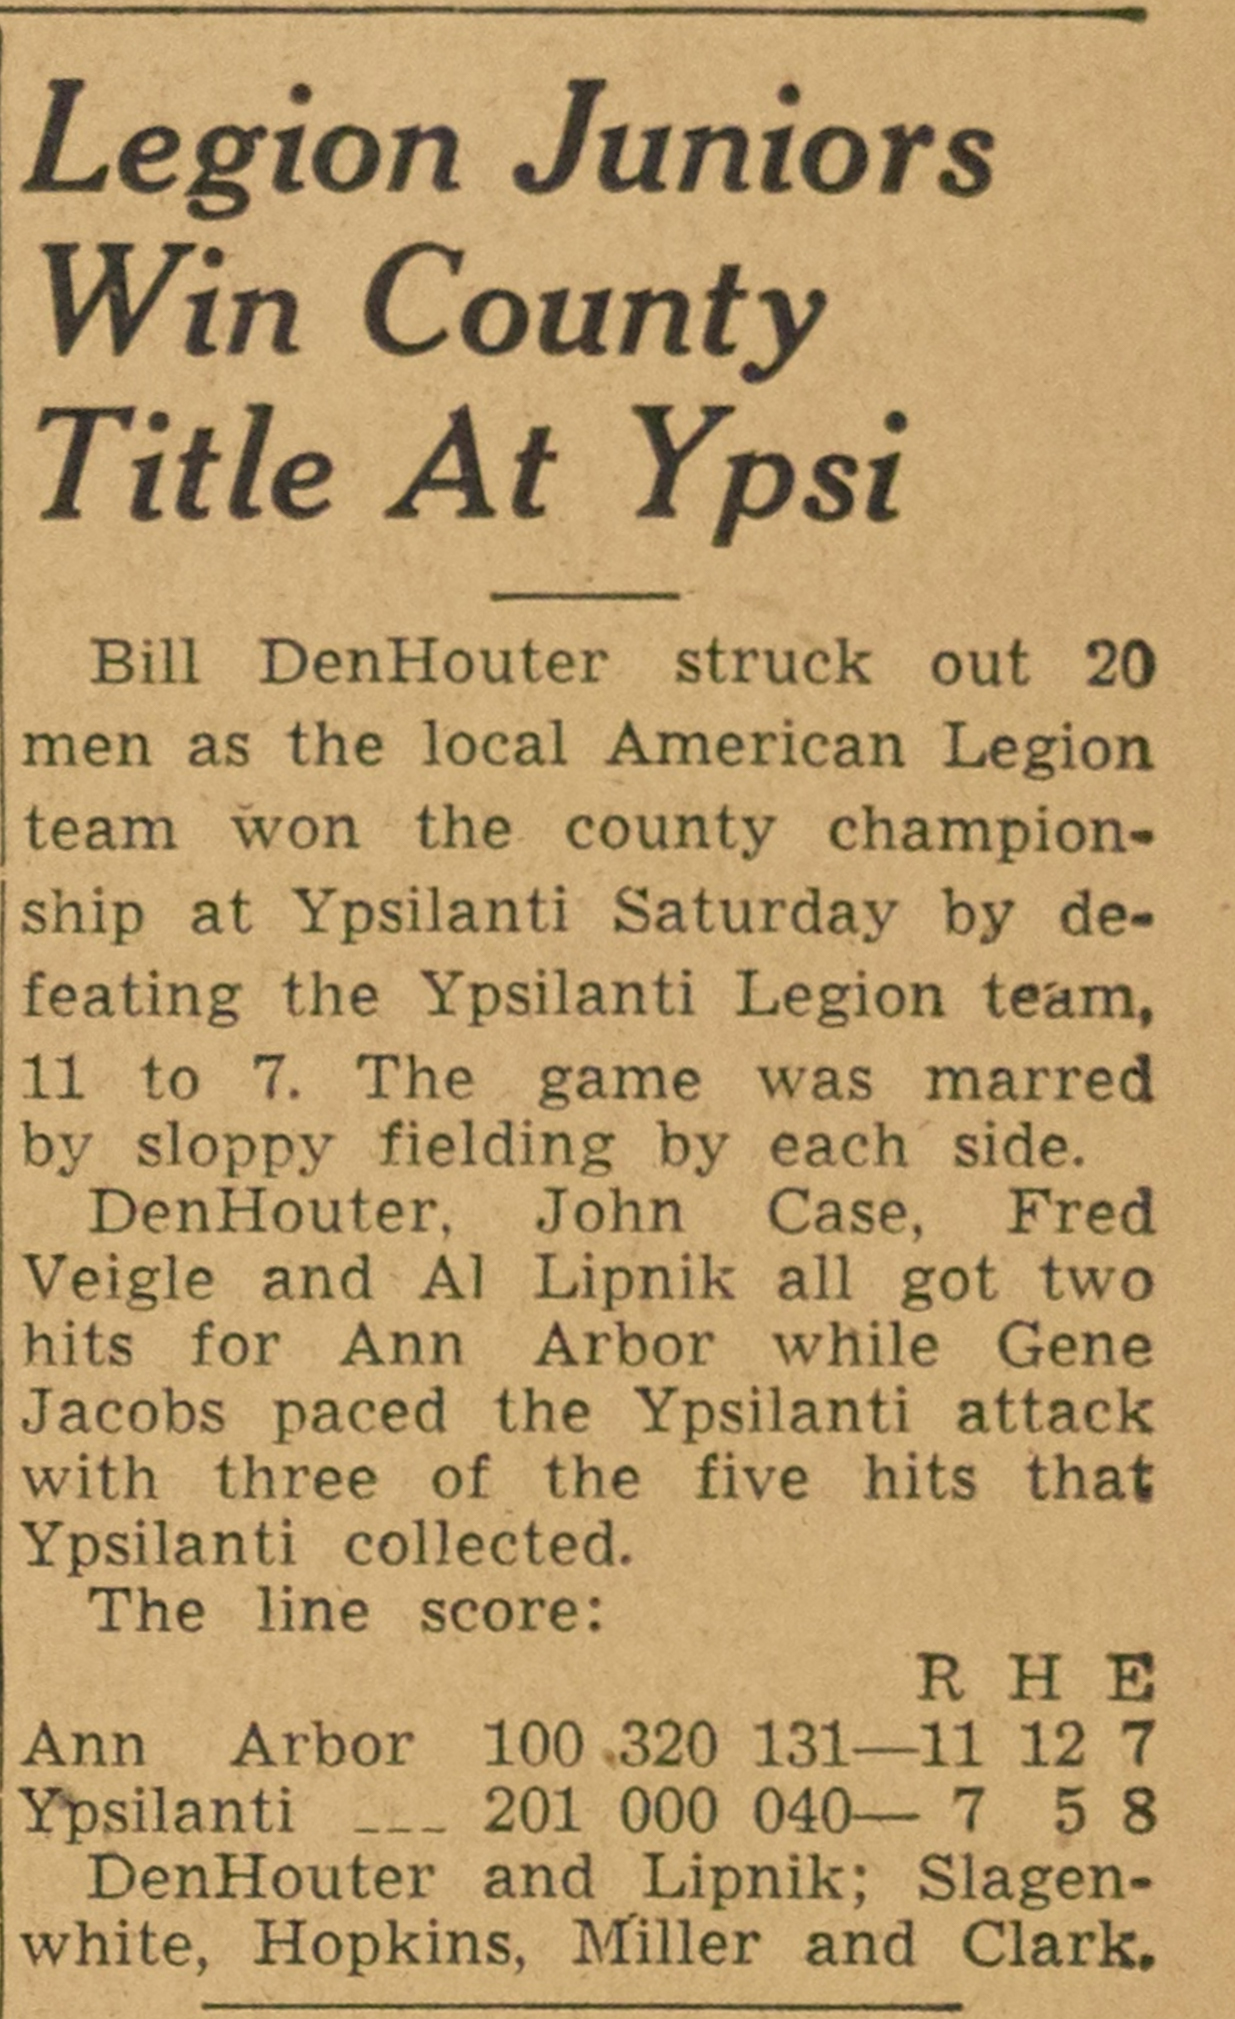 Legion Juniors Win County Title At Ypsi image